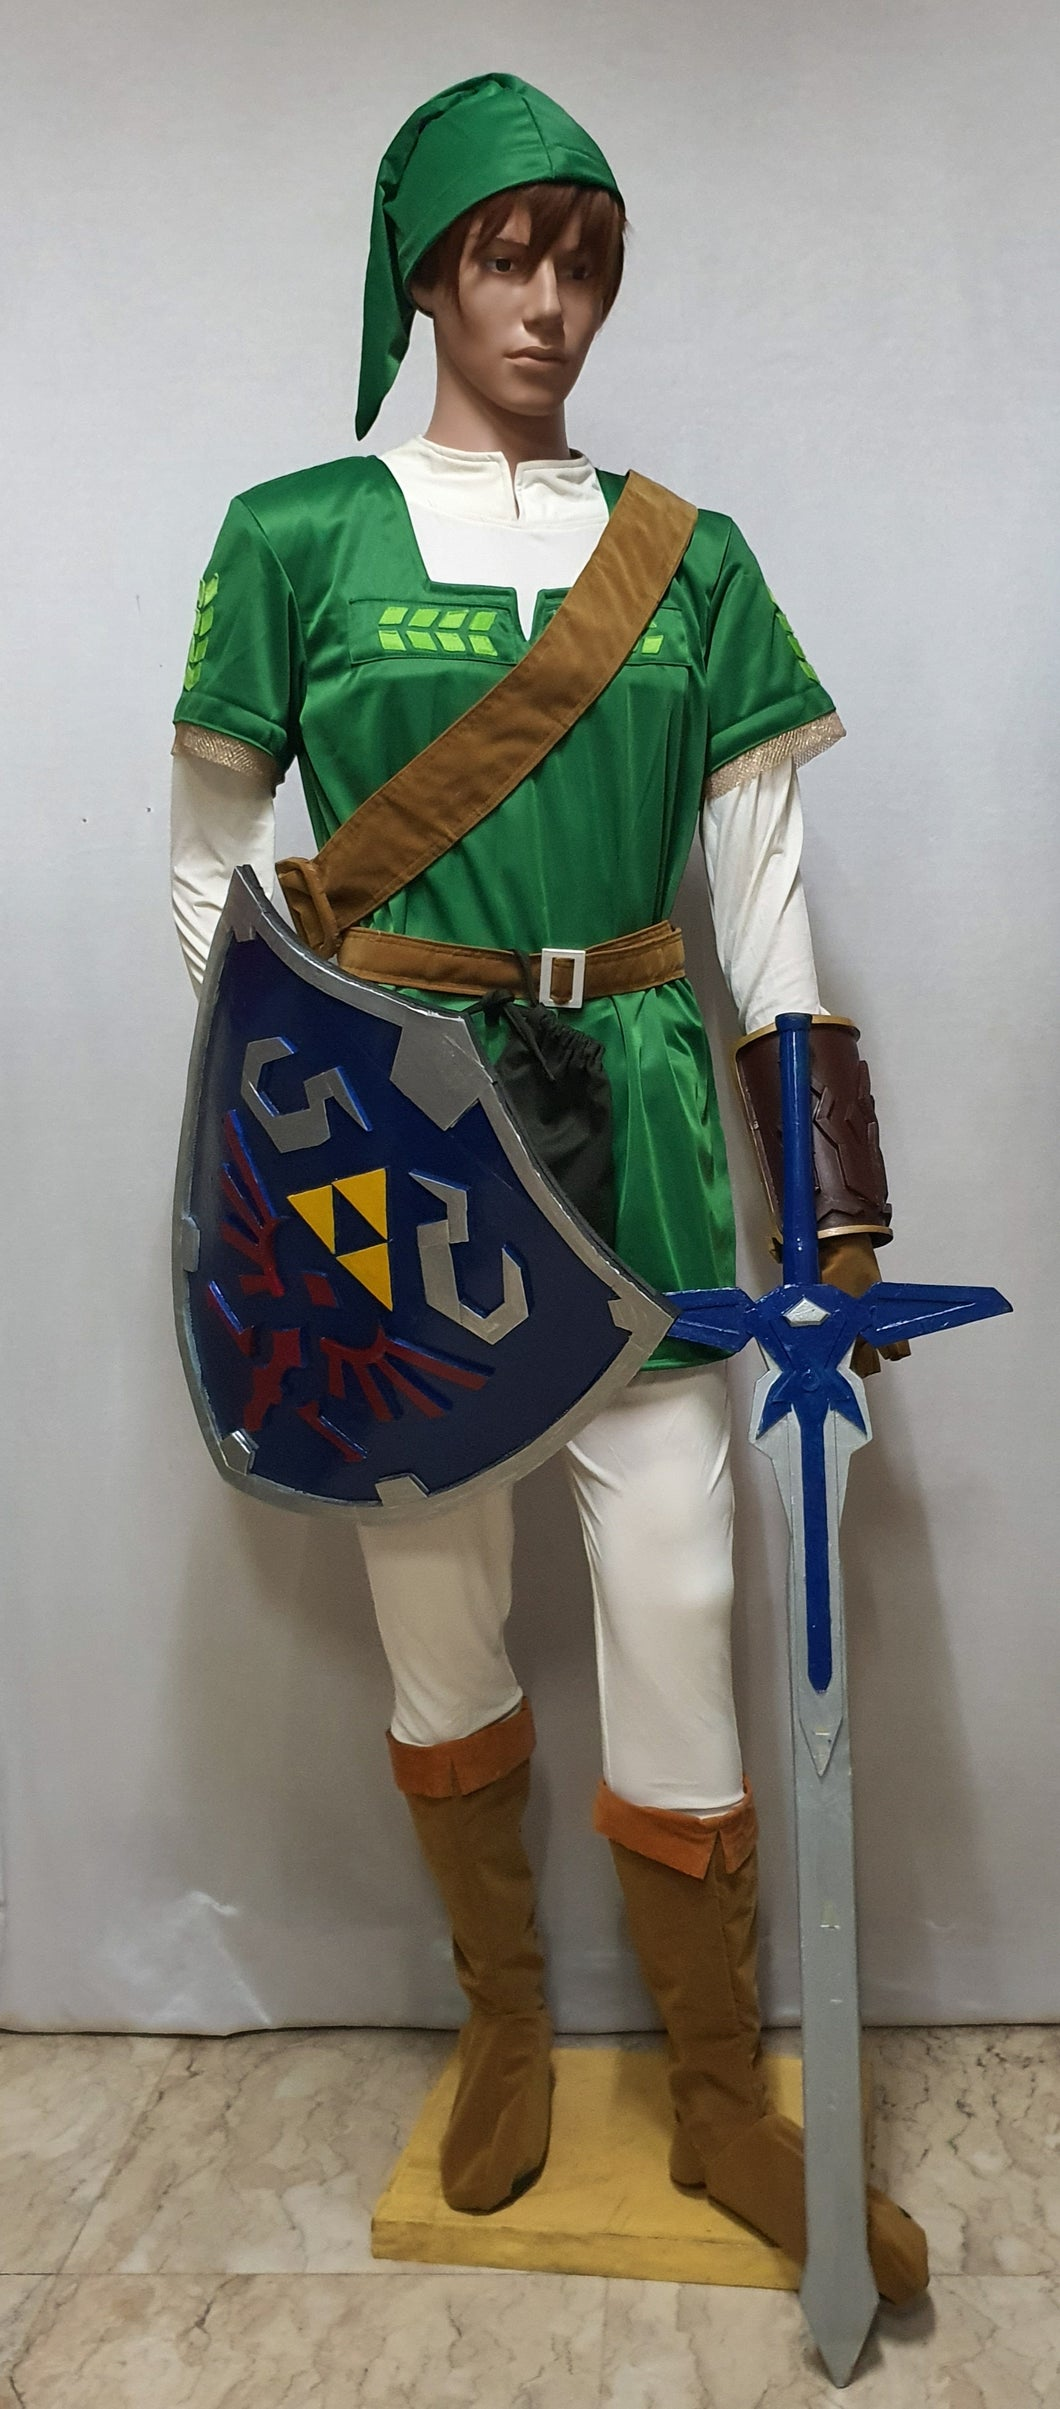 Link of Zelda Costume